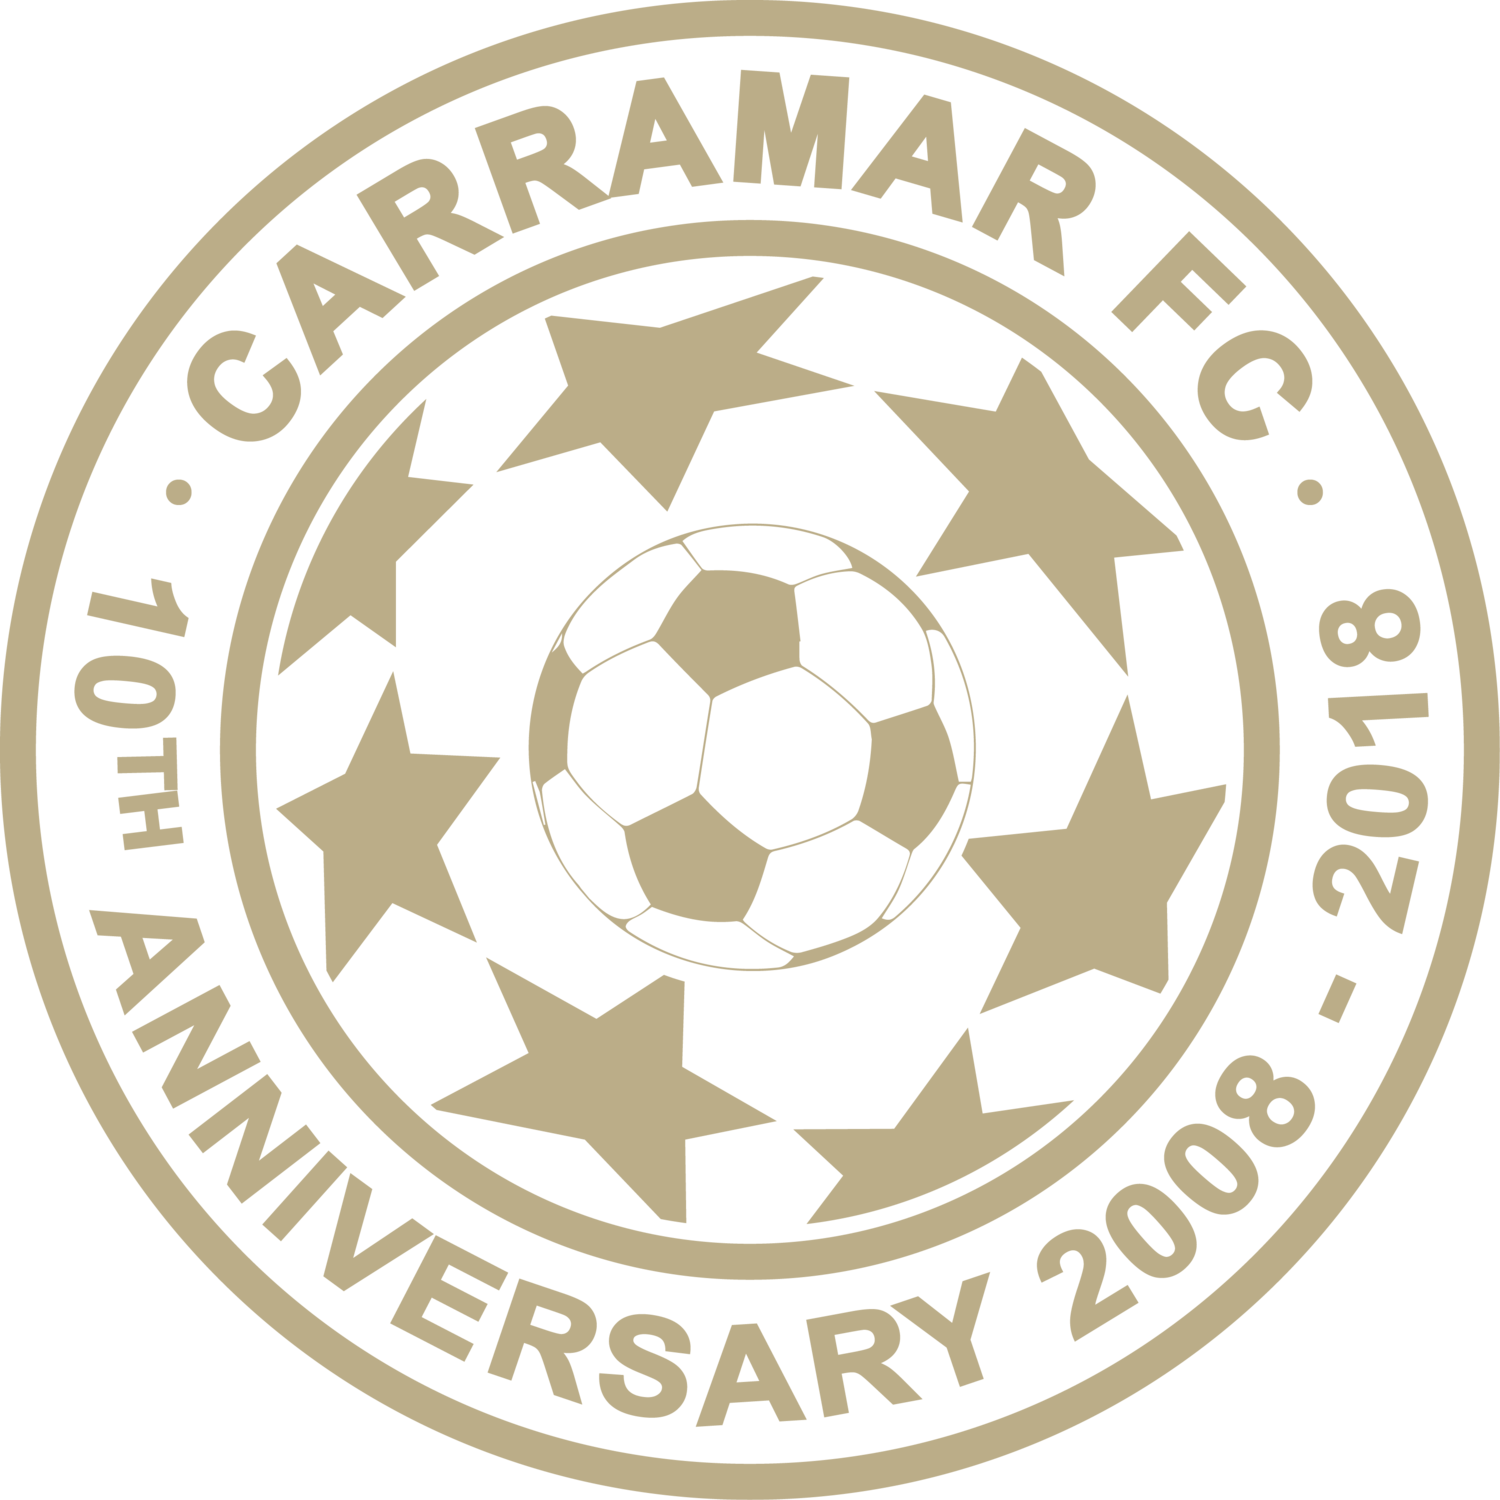 Carramar Football Club